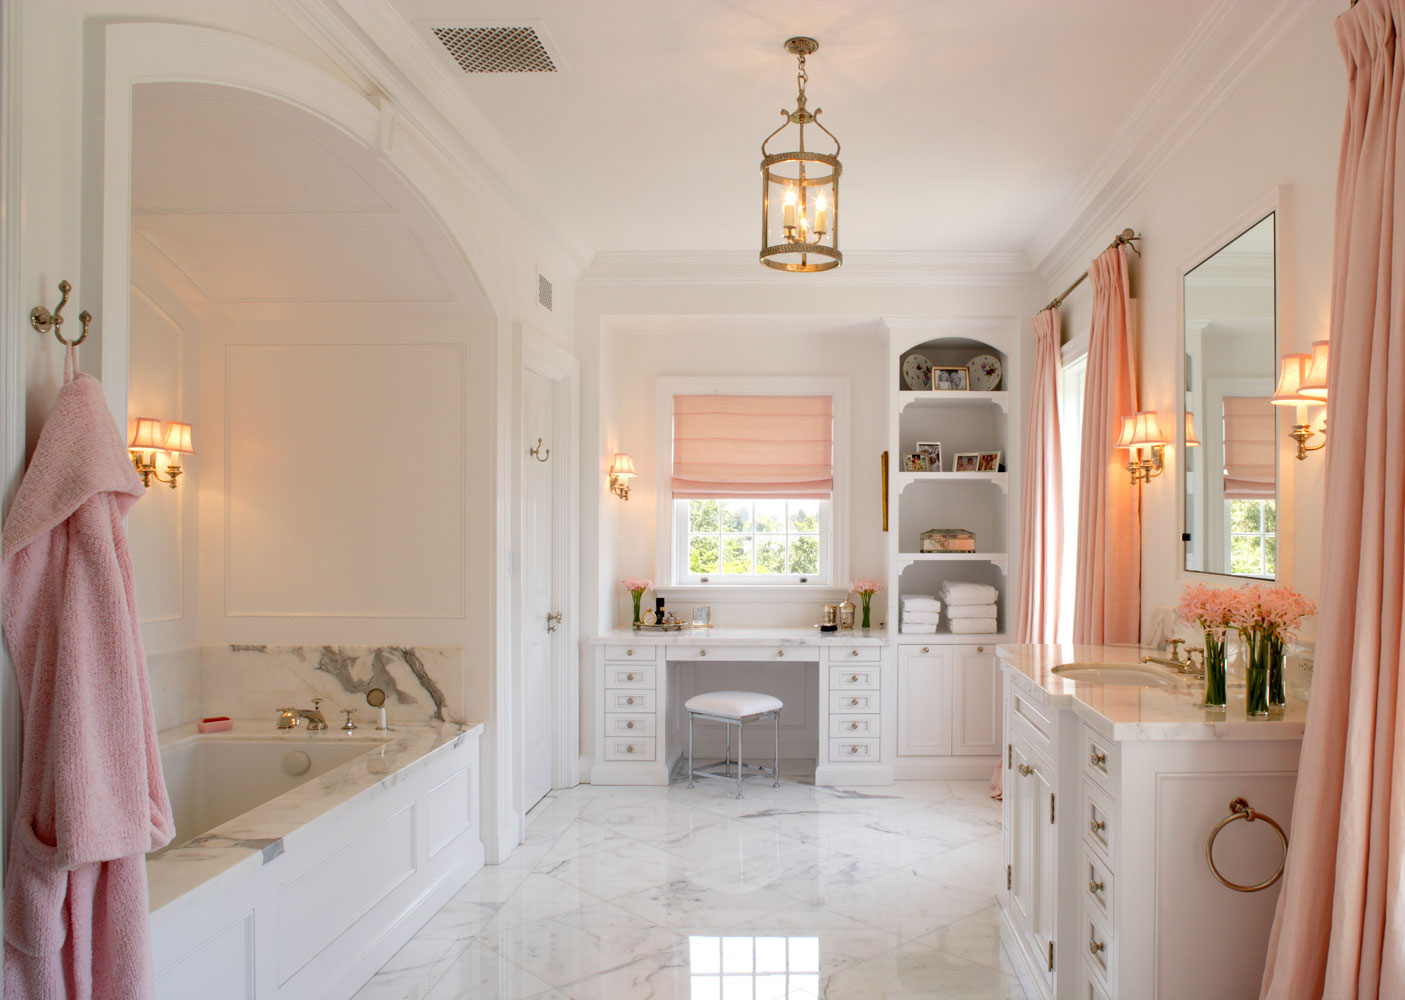 Glamorous Bathrooms Glamorous Bathrooms  Casas De Banho Glamorosas  Home Interior Design